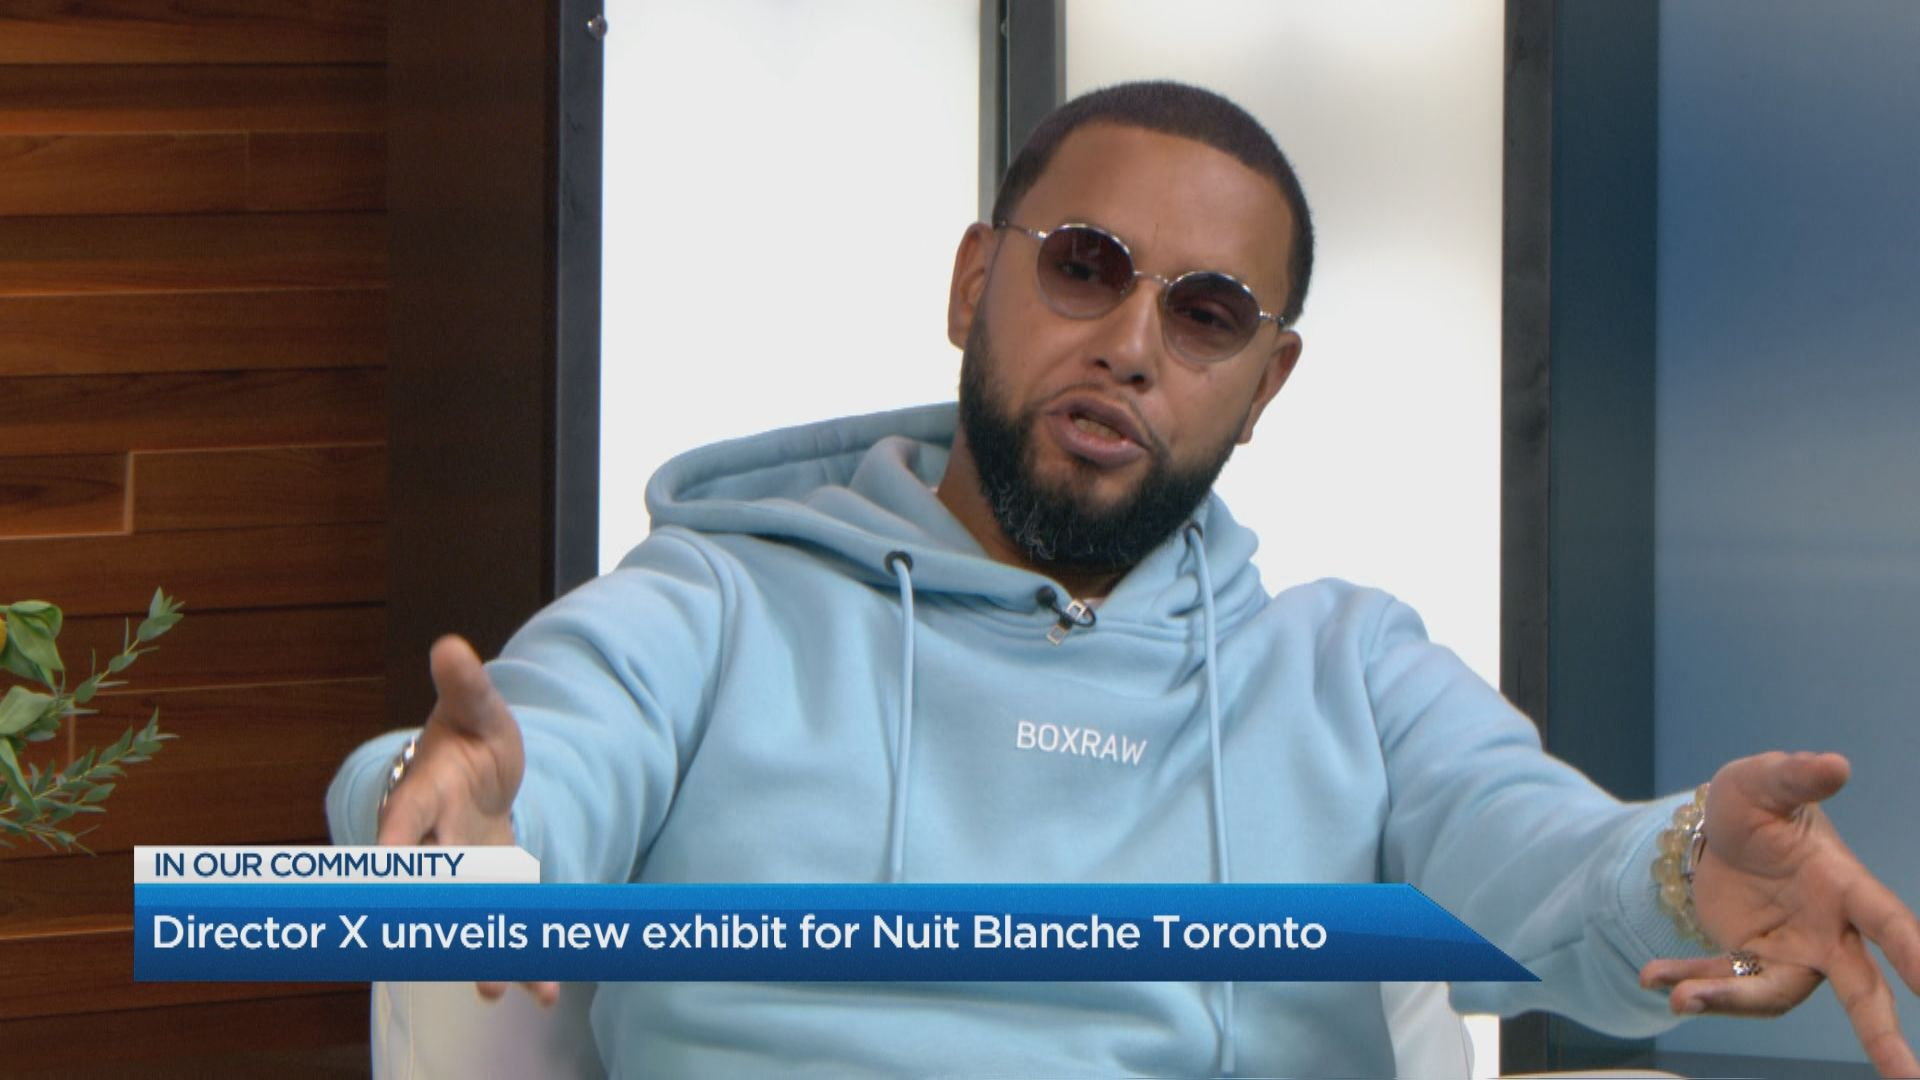 Director X unveils new exhibit for Nuit Blanche Toronto